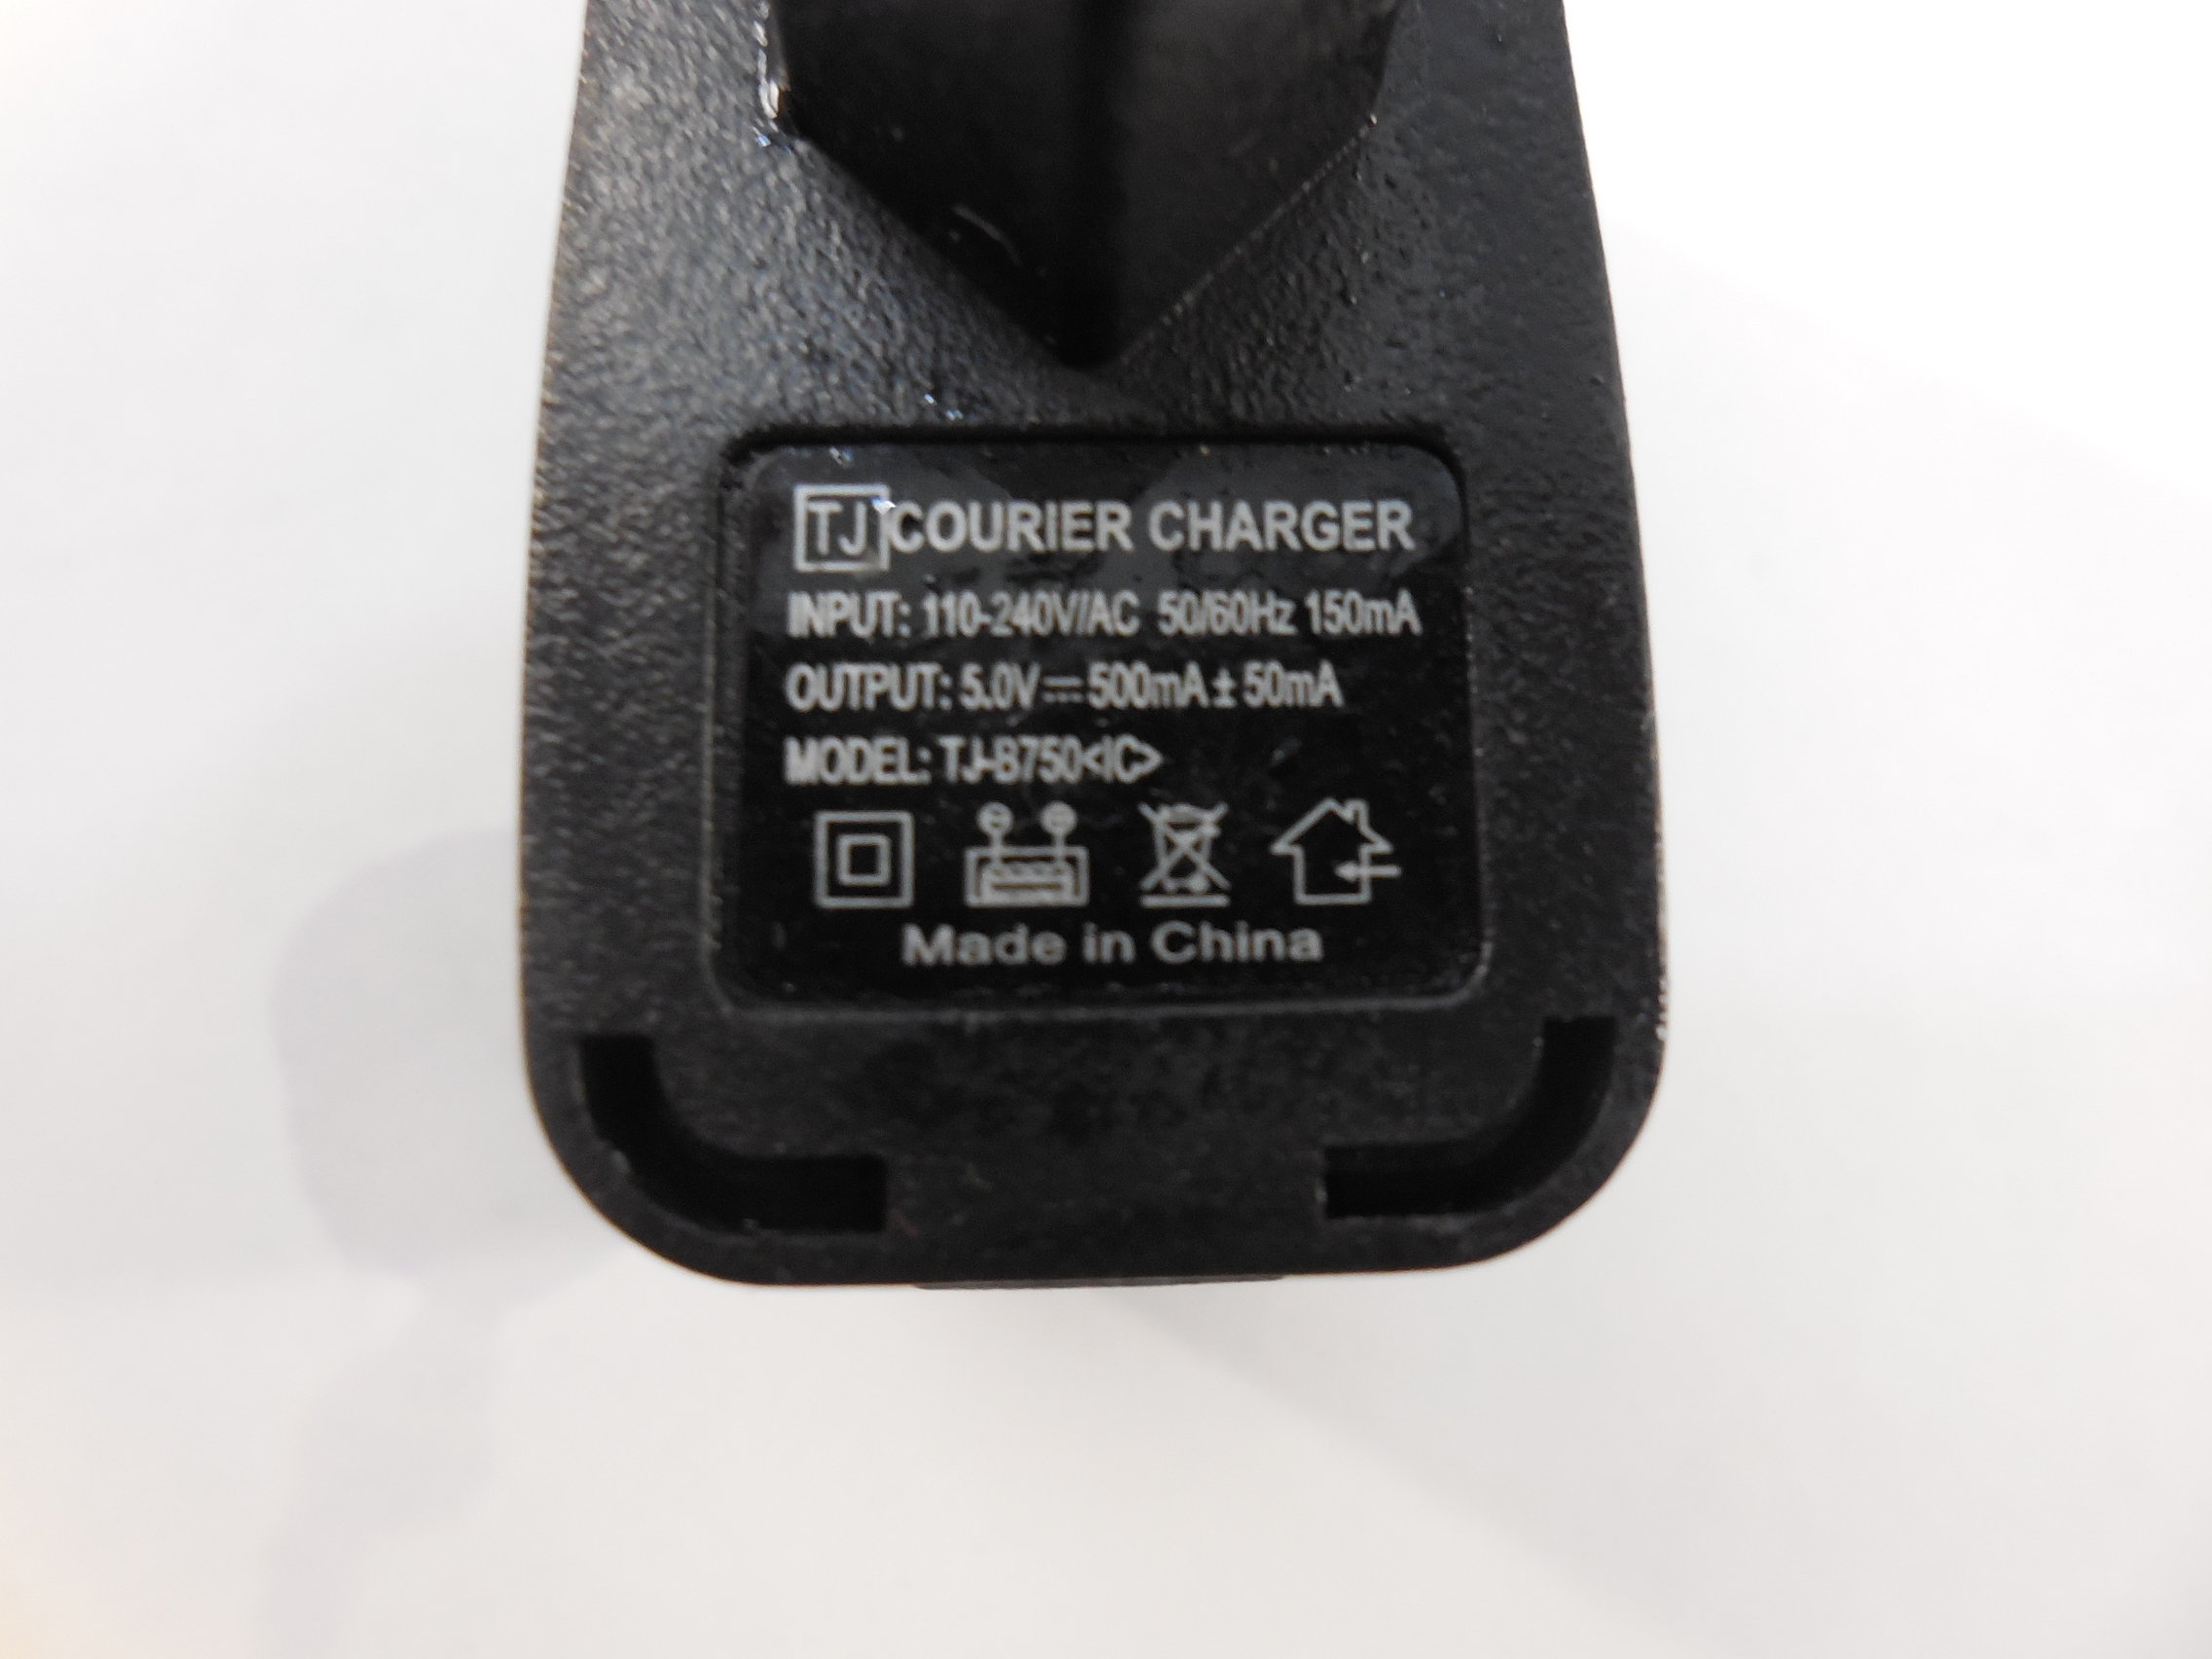 Блок питания TJ Courier Charger - Pic n 257043